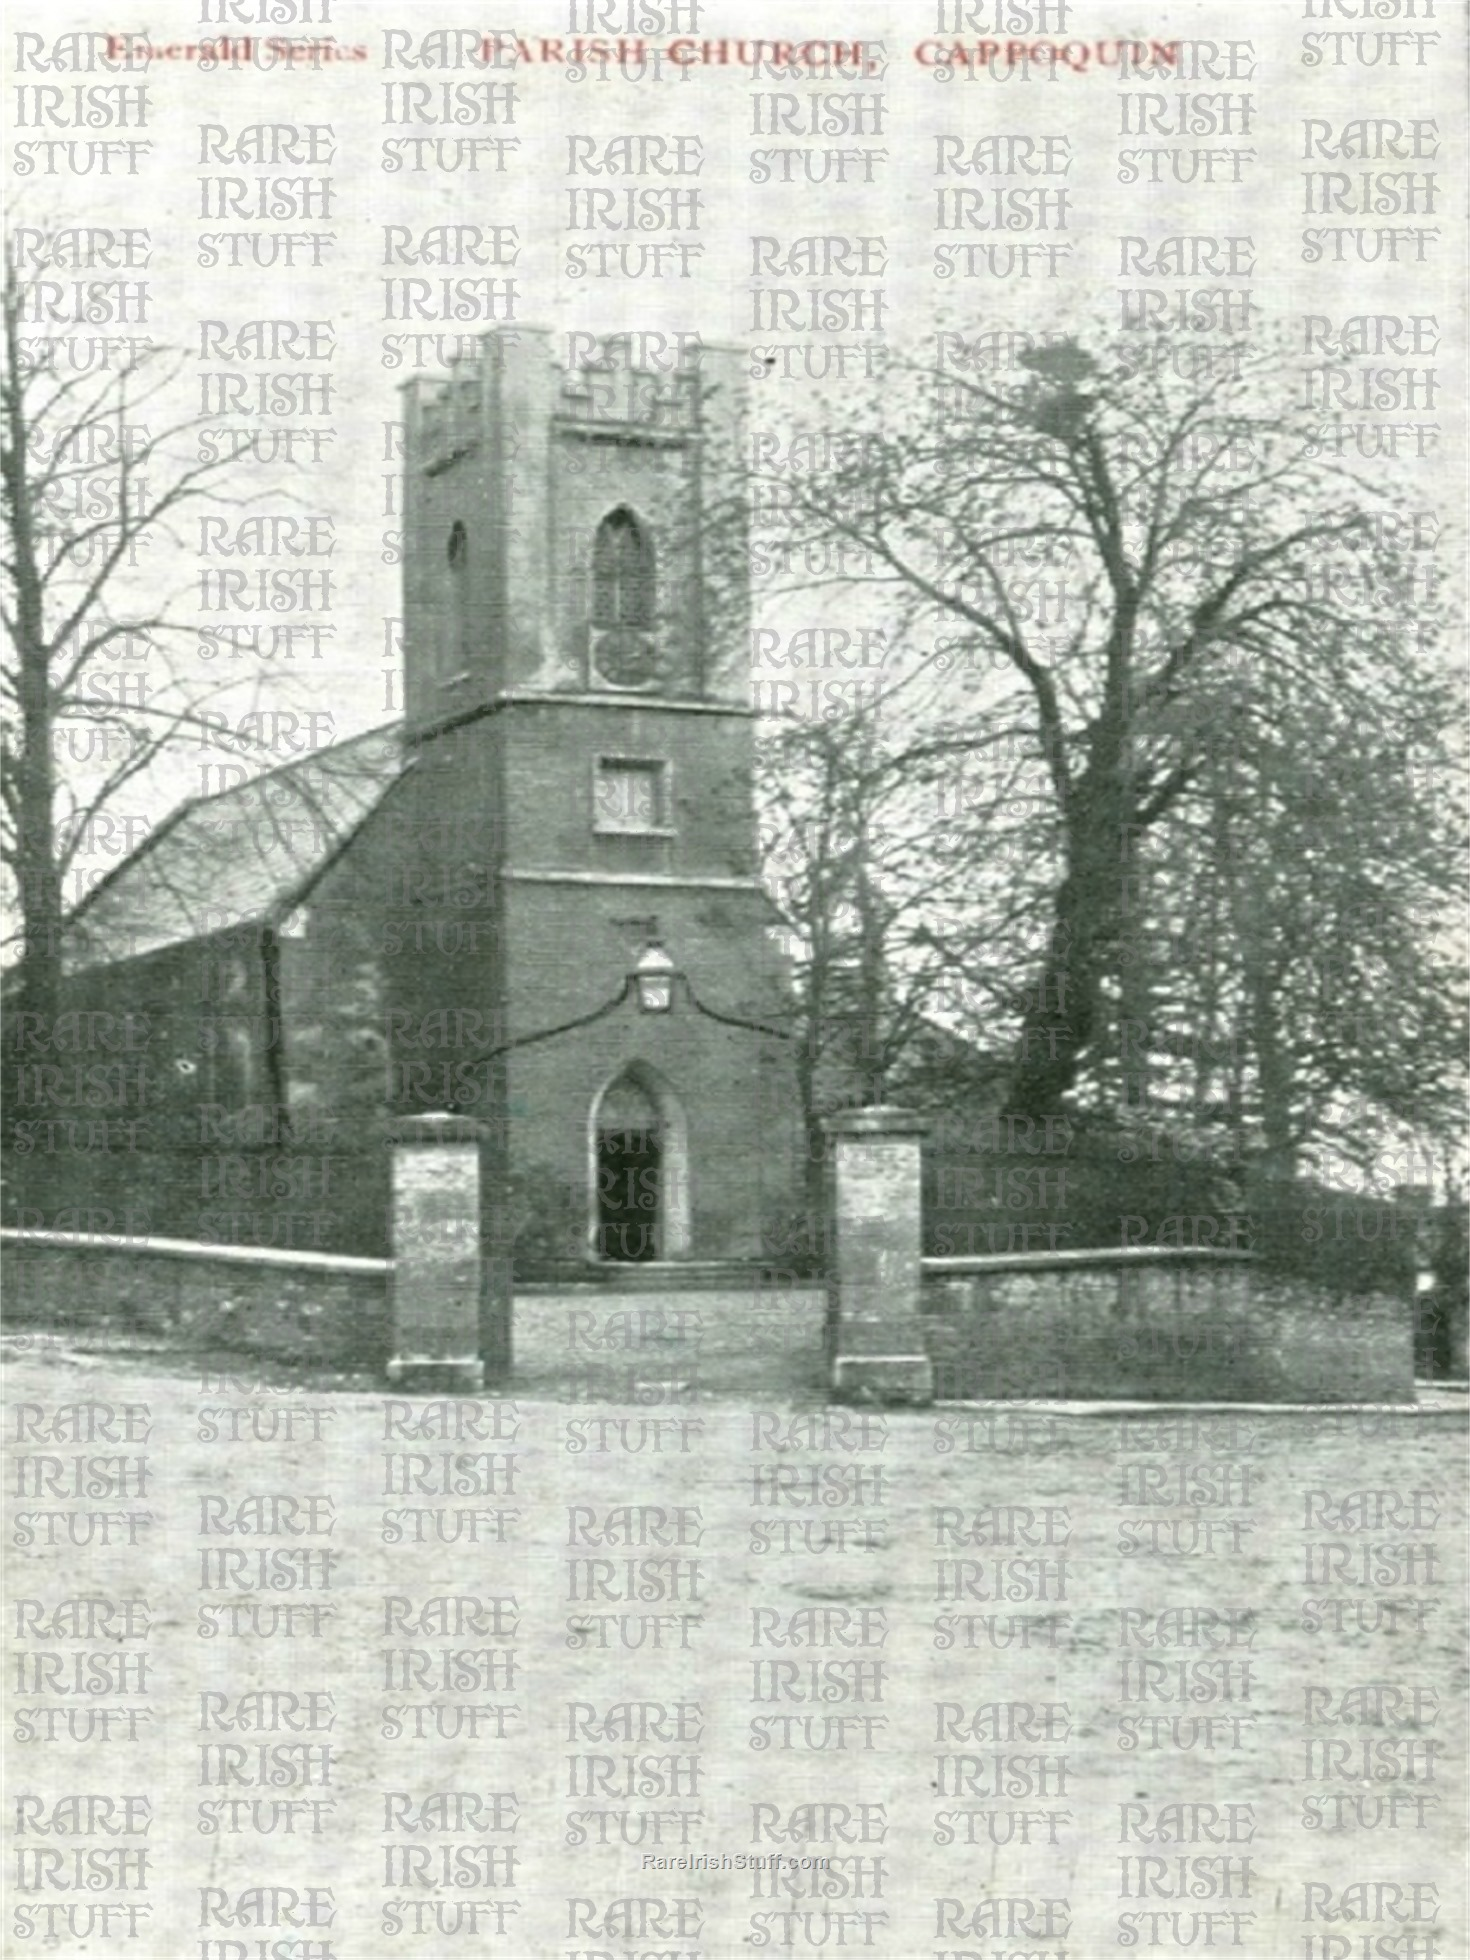 Cappoquin  Parish  Church   Waterford   Ireland 1900  Thumbnail0